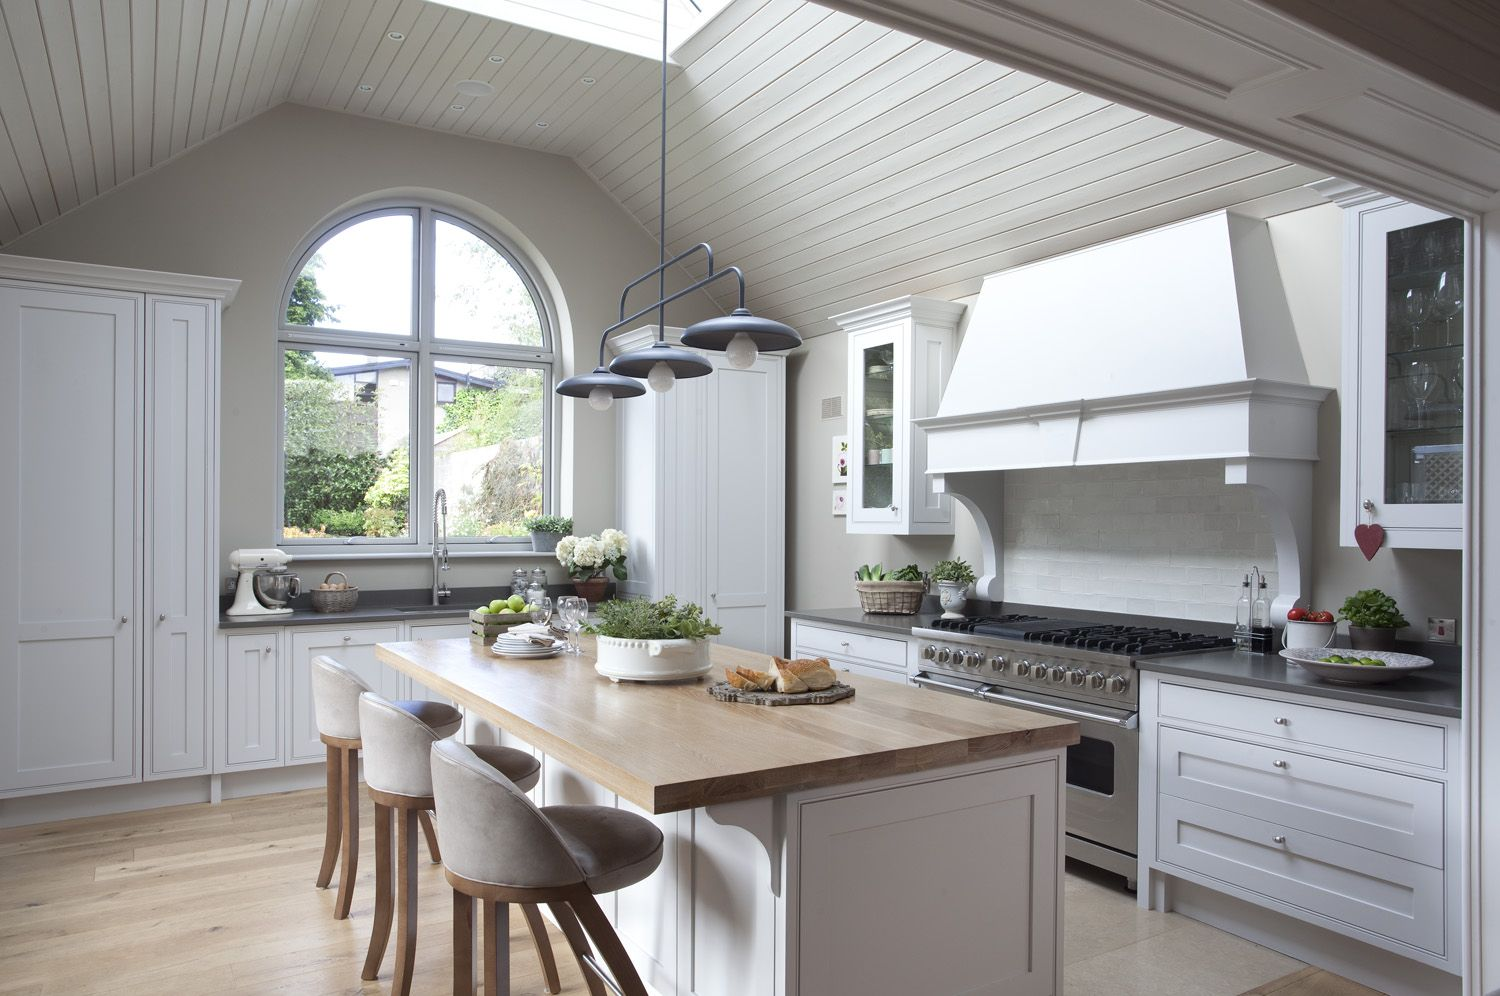 Minosa Hamptons Style Kitchen Minosa Hamptons Style Kitchen - Hamptons kitchen design